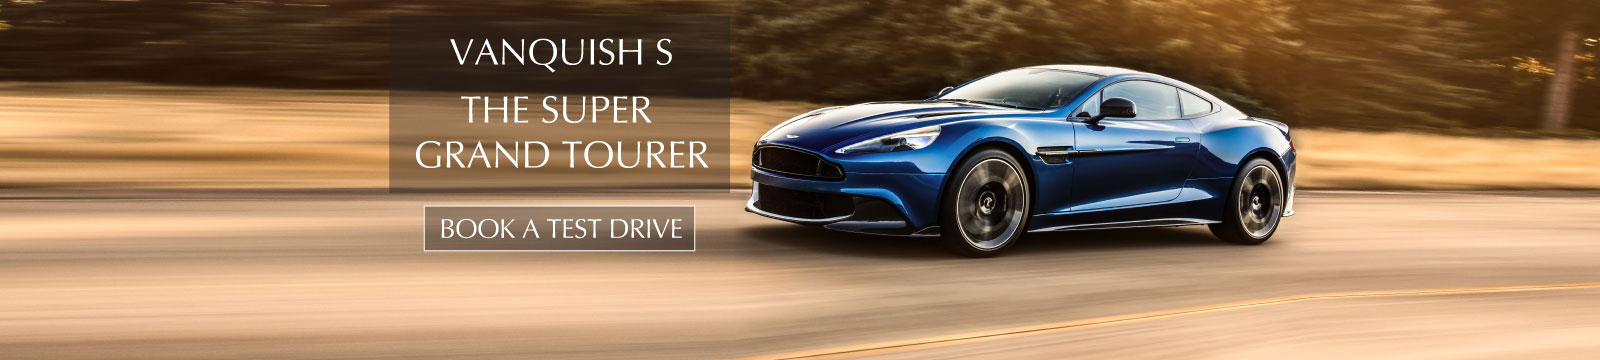 Aston Martin Vancouver Aston Martin Dealership In Vancouver BC - Aston martin lease price